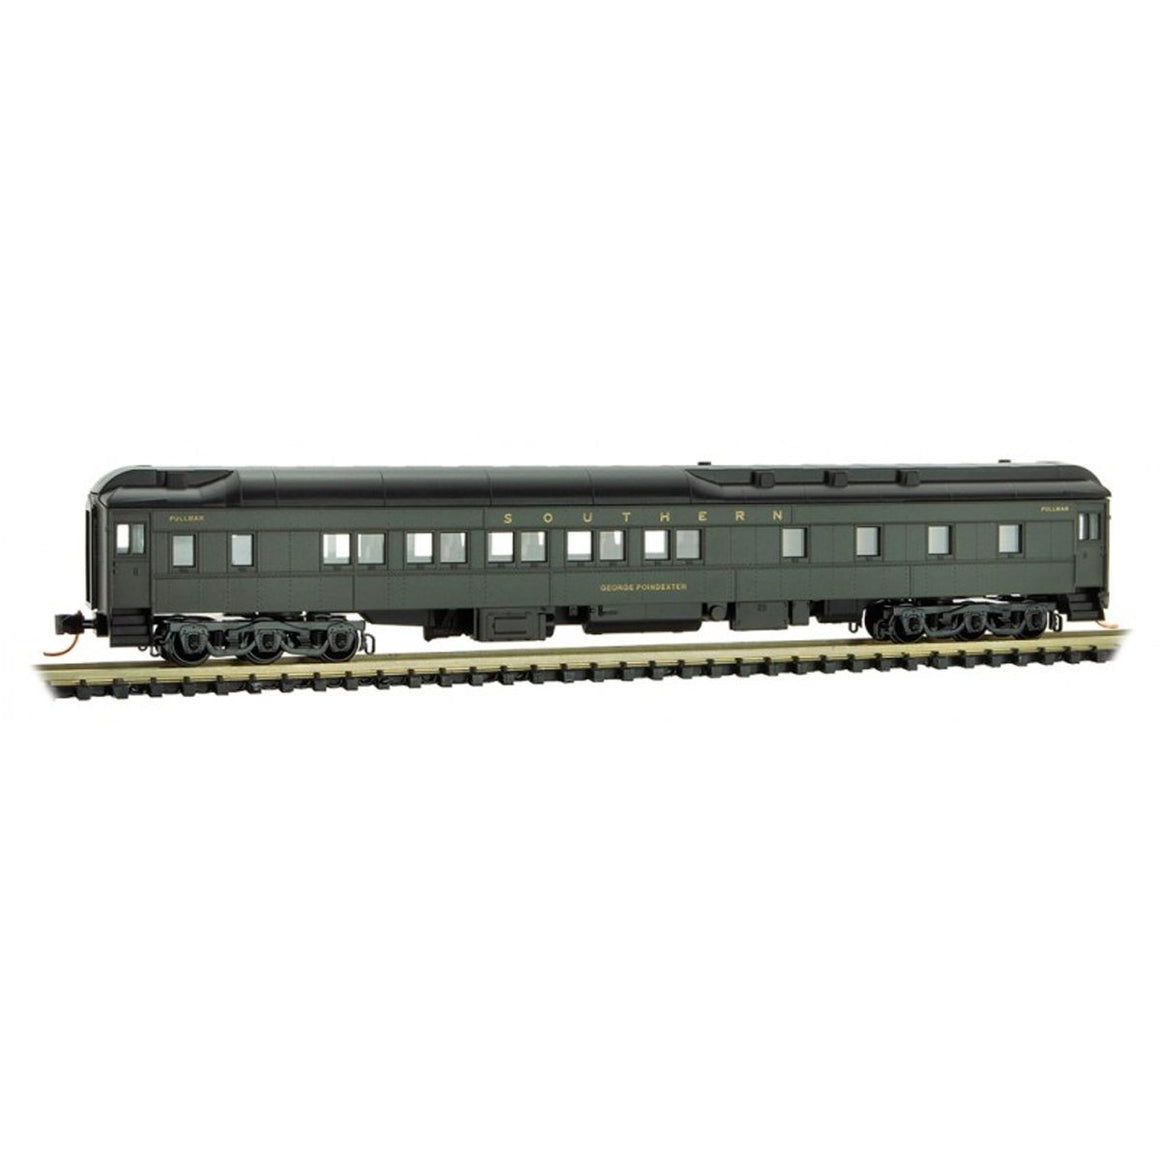 N Scale: 10-1-2 Heavyweight Sleeper Car - Southern Railway 'George Pondexter'